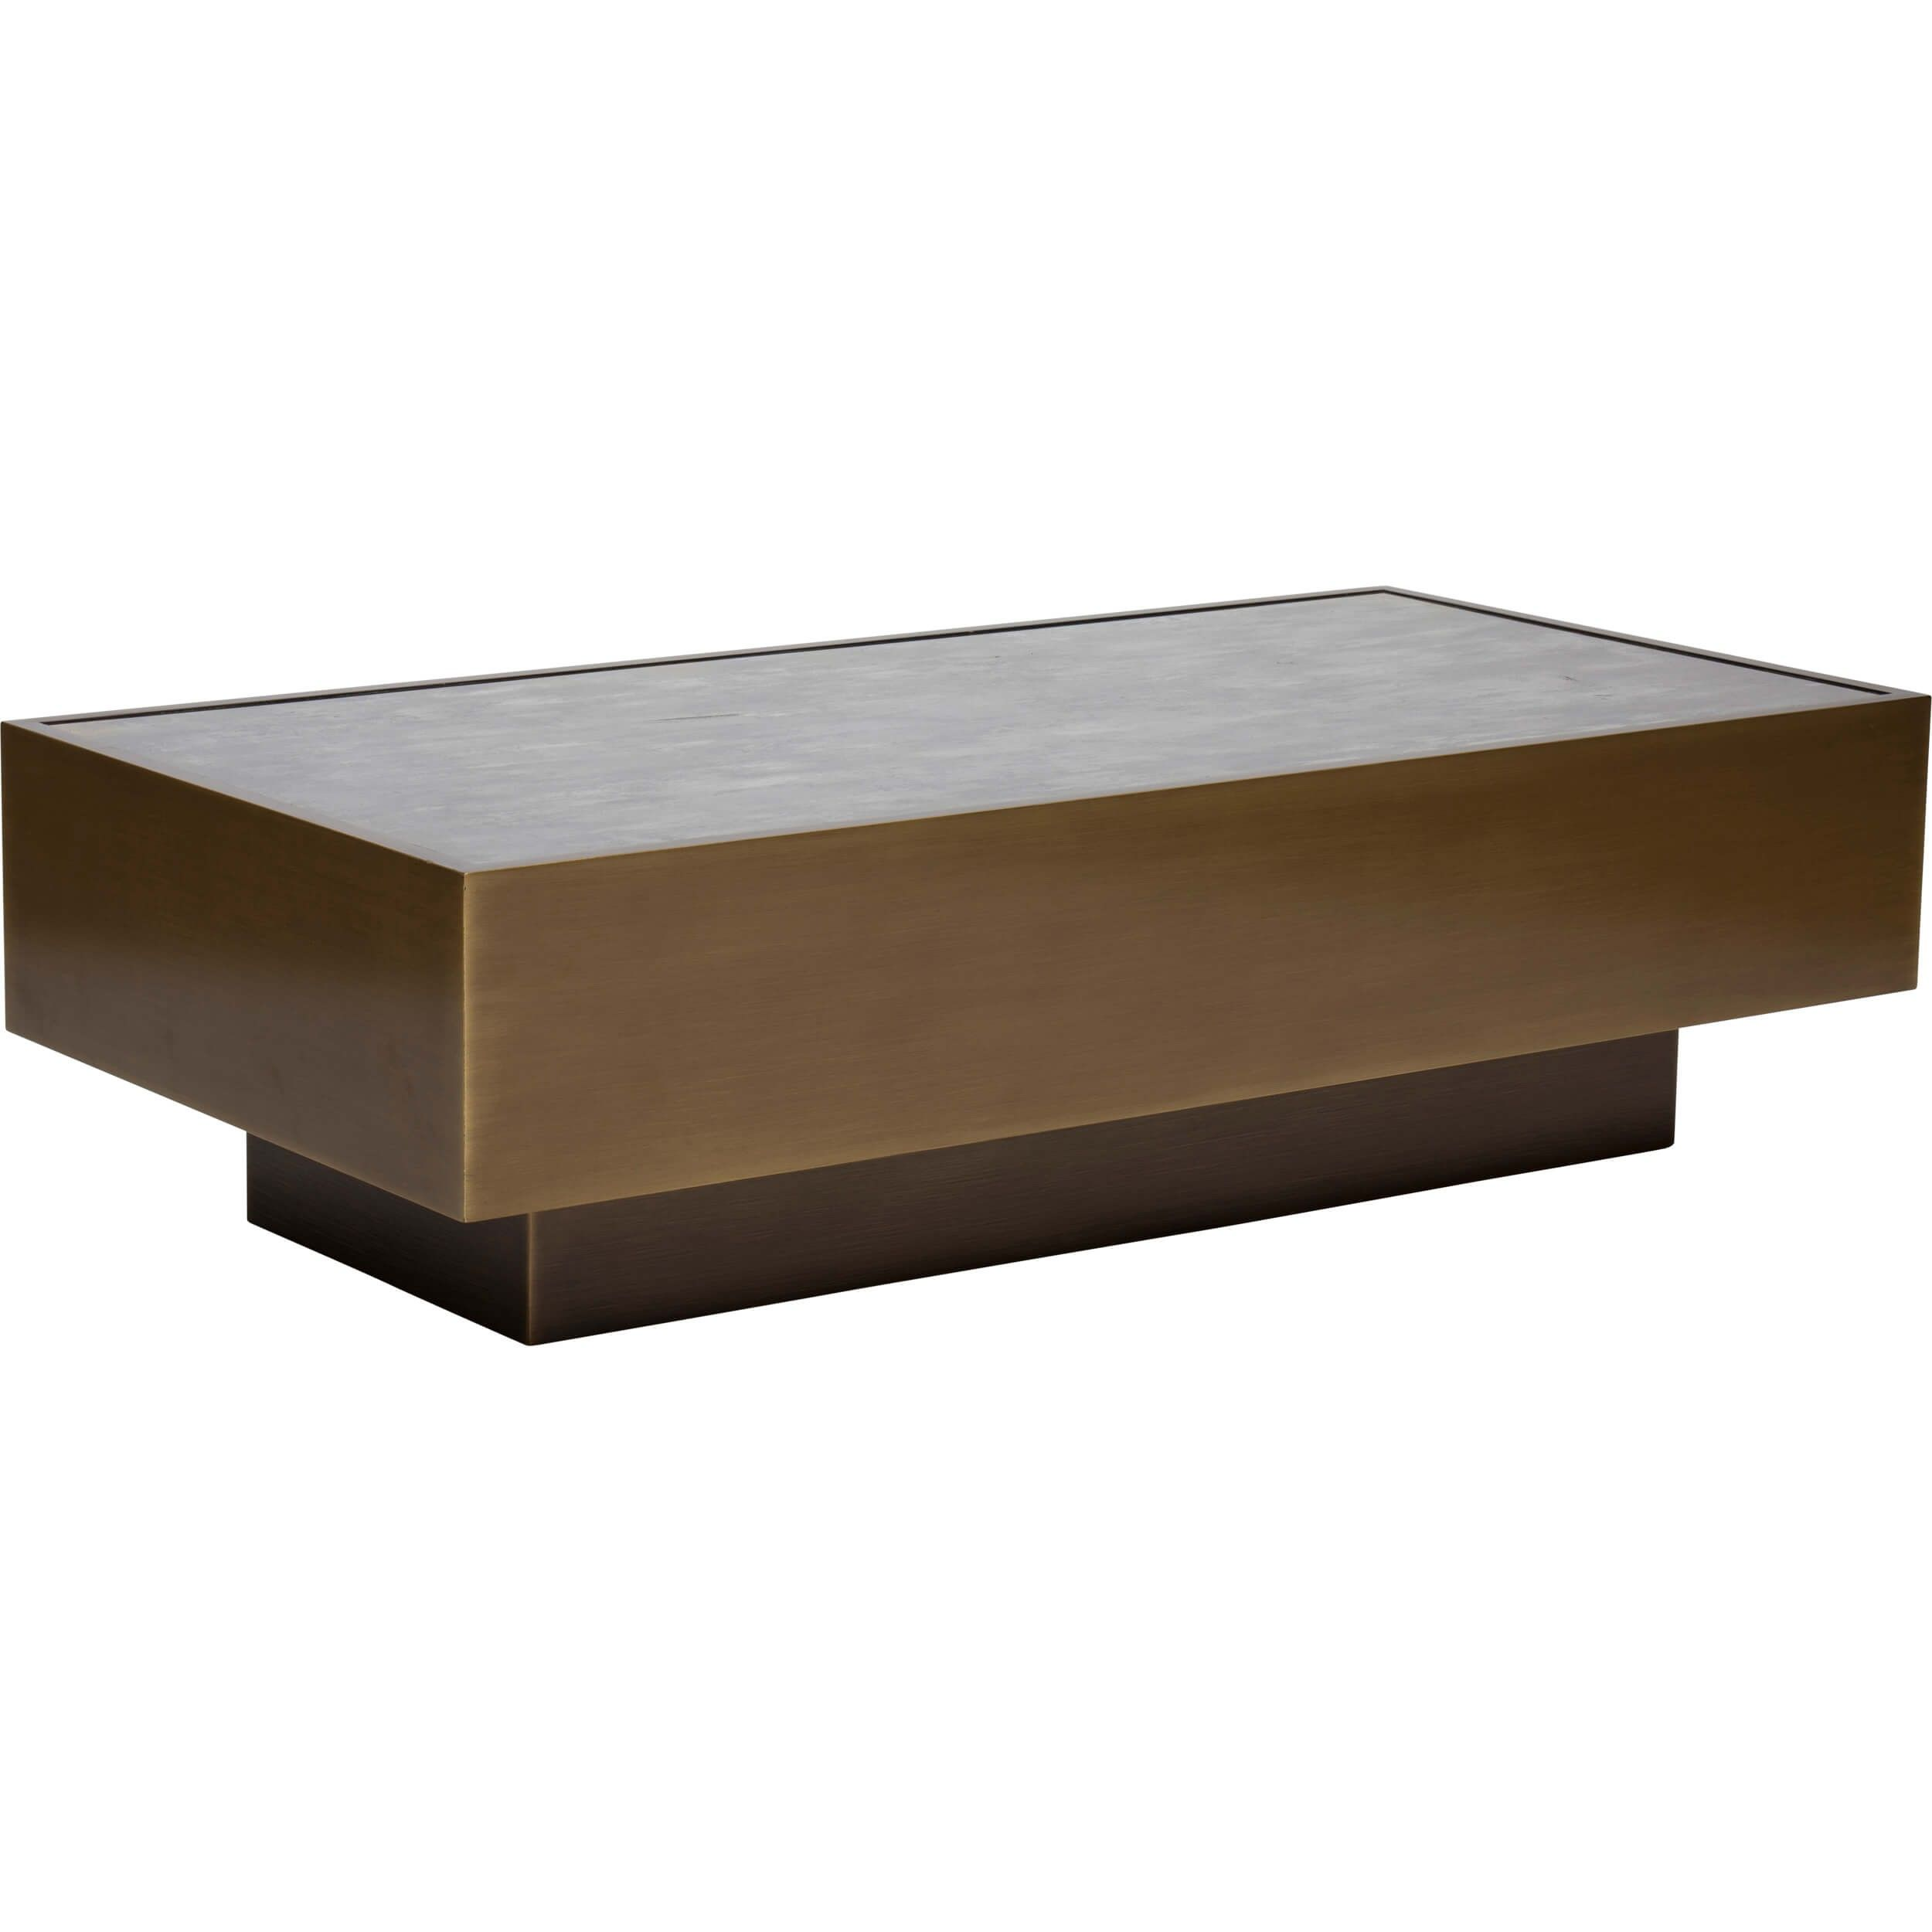 Esk Cocktail Table - Coffee Tables - Accent Tables - Furniture